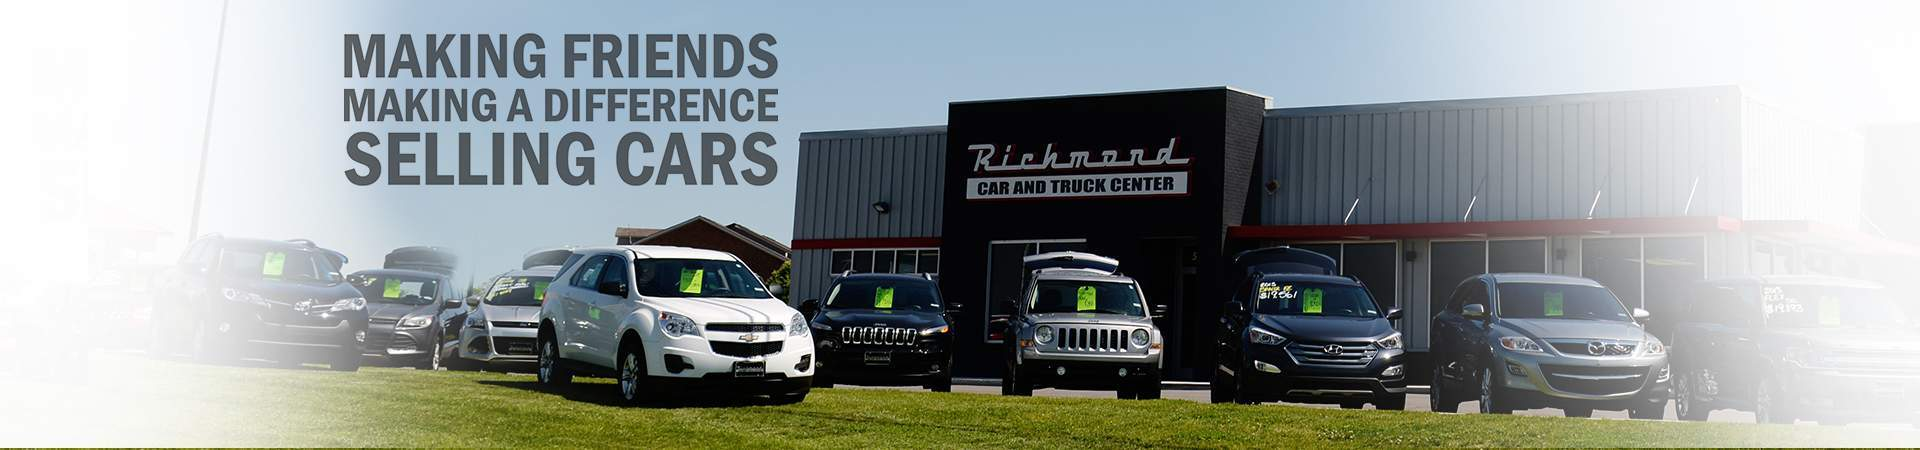 Car Dealerships In Richmond Ky >> Used Car Dealership Richmond Ky Richmond Car And Truck Center